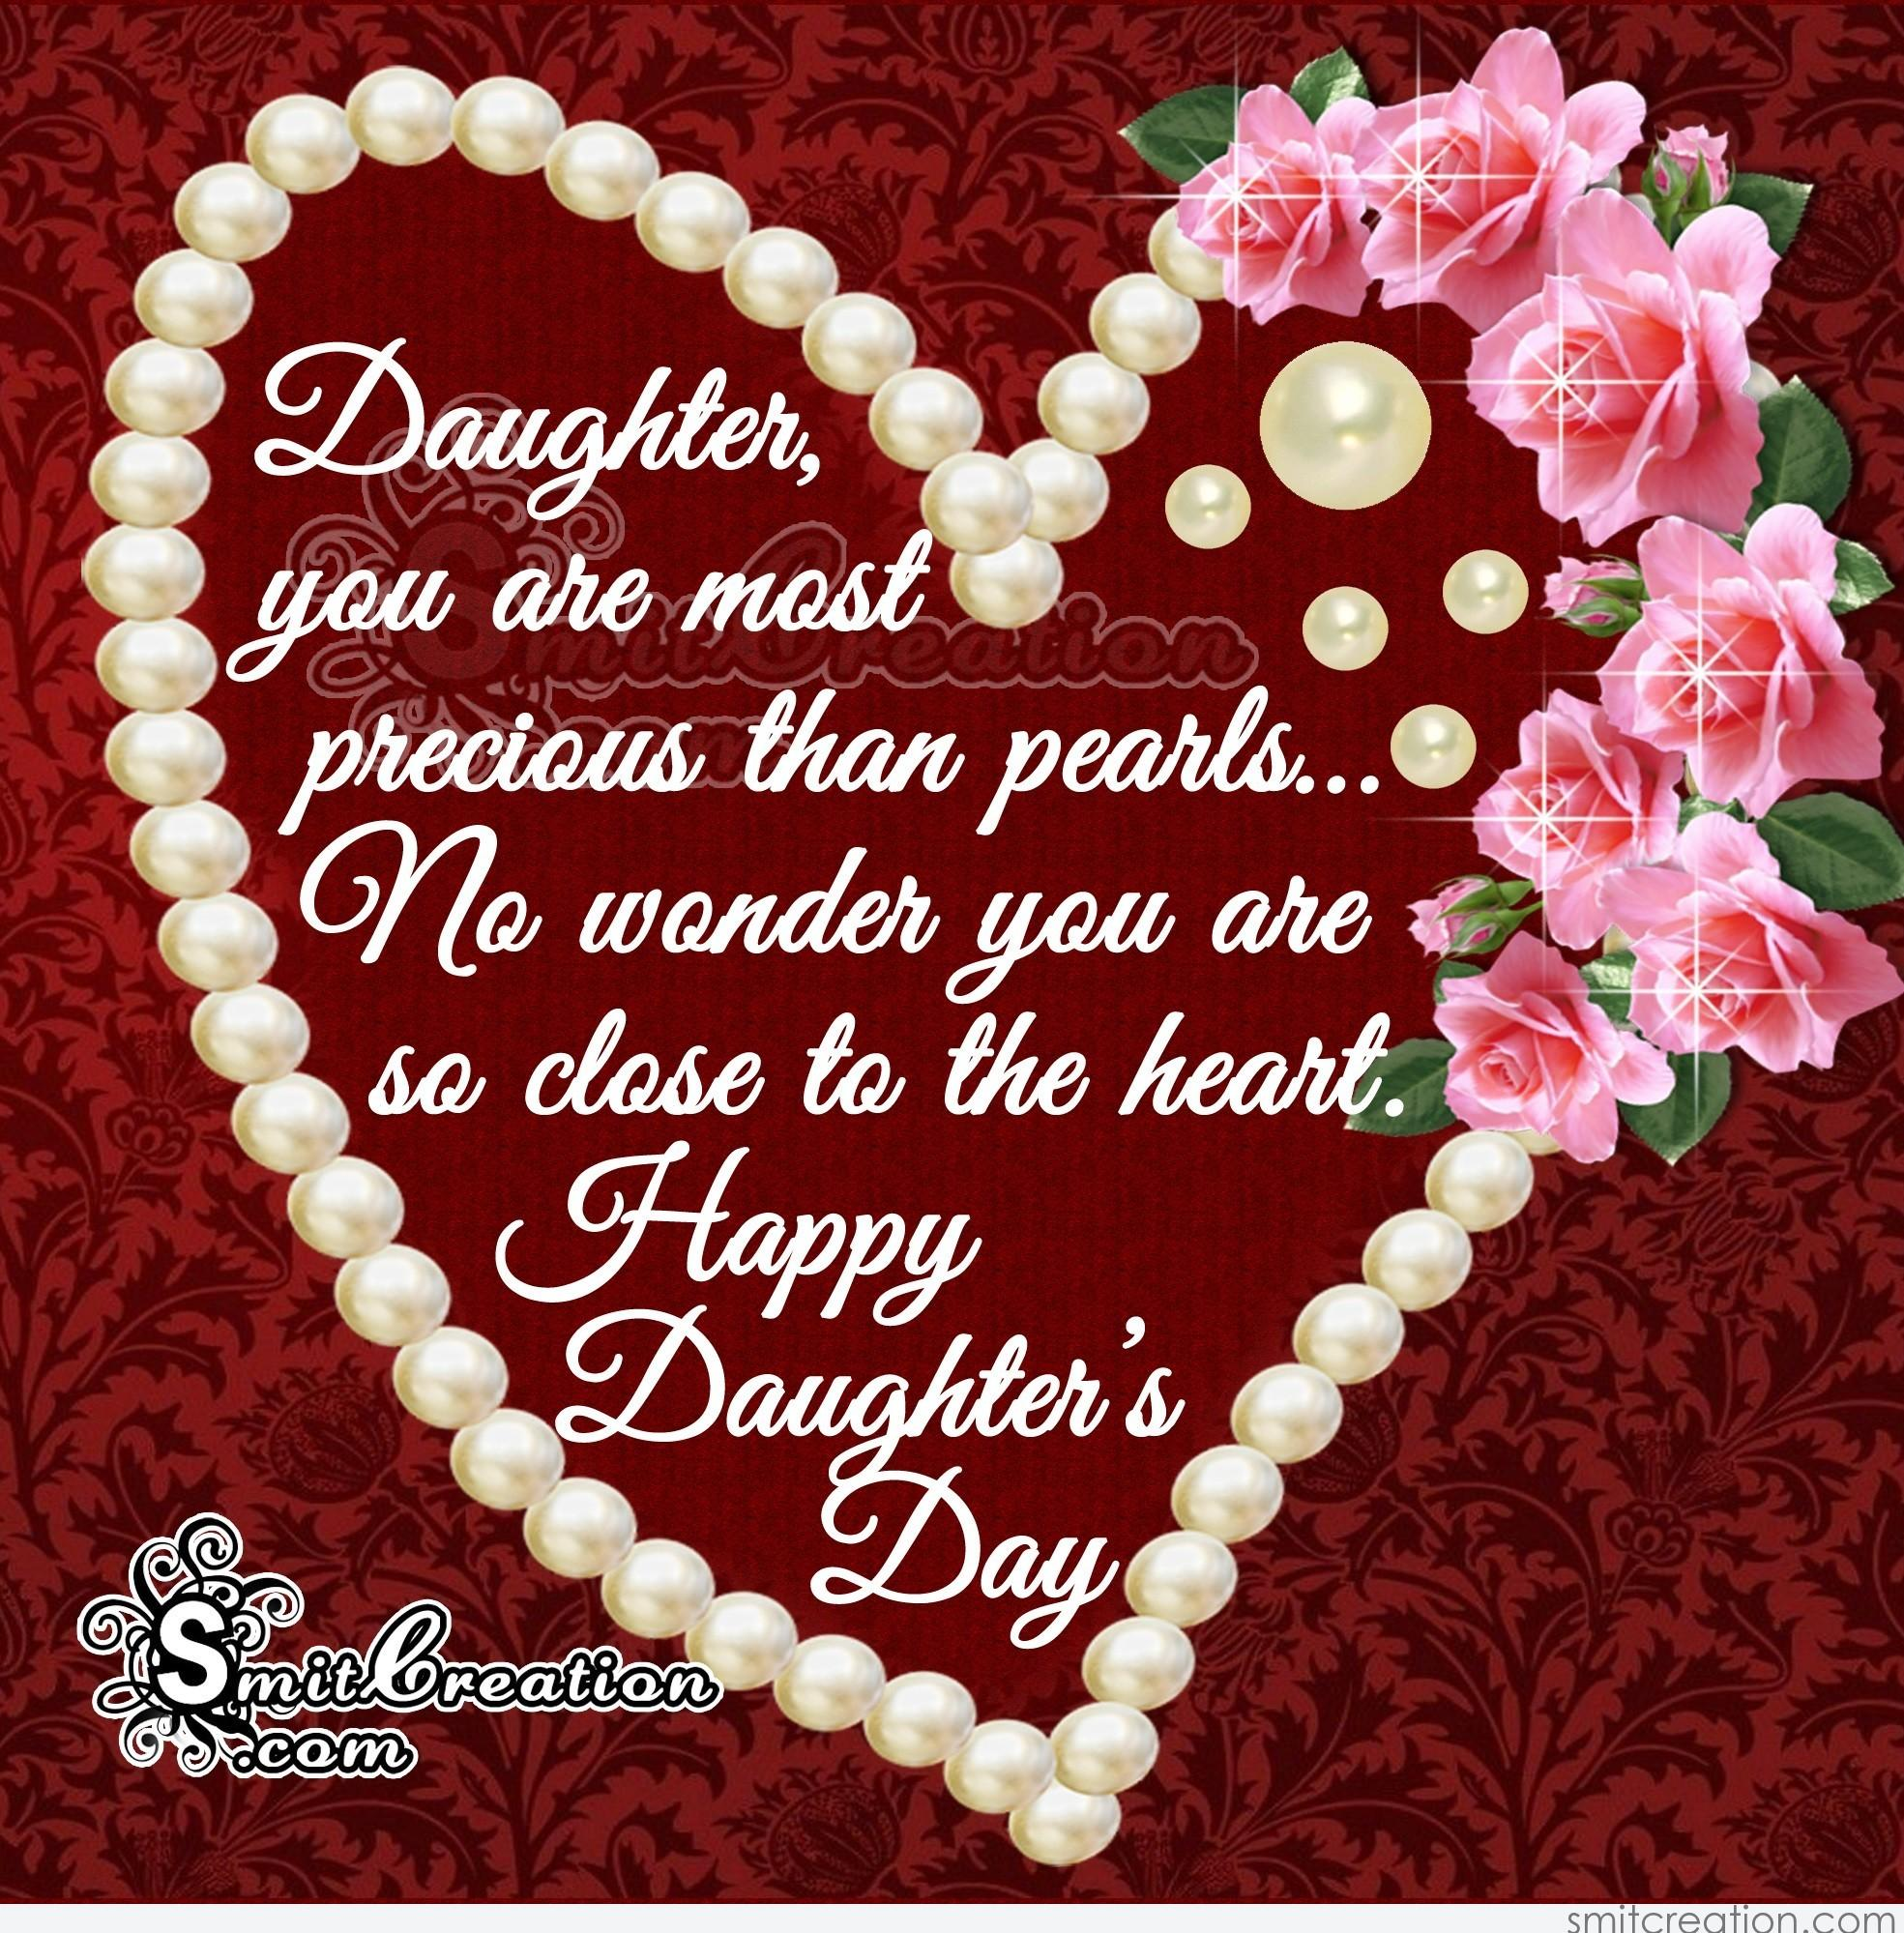 Happy daughters day you are the most precious than pearls daughter you are most precious than pearls no wonder you are so close to the heart happy daughters day m4hsunfo